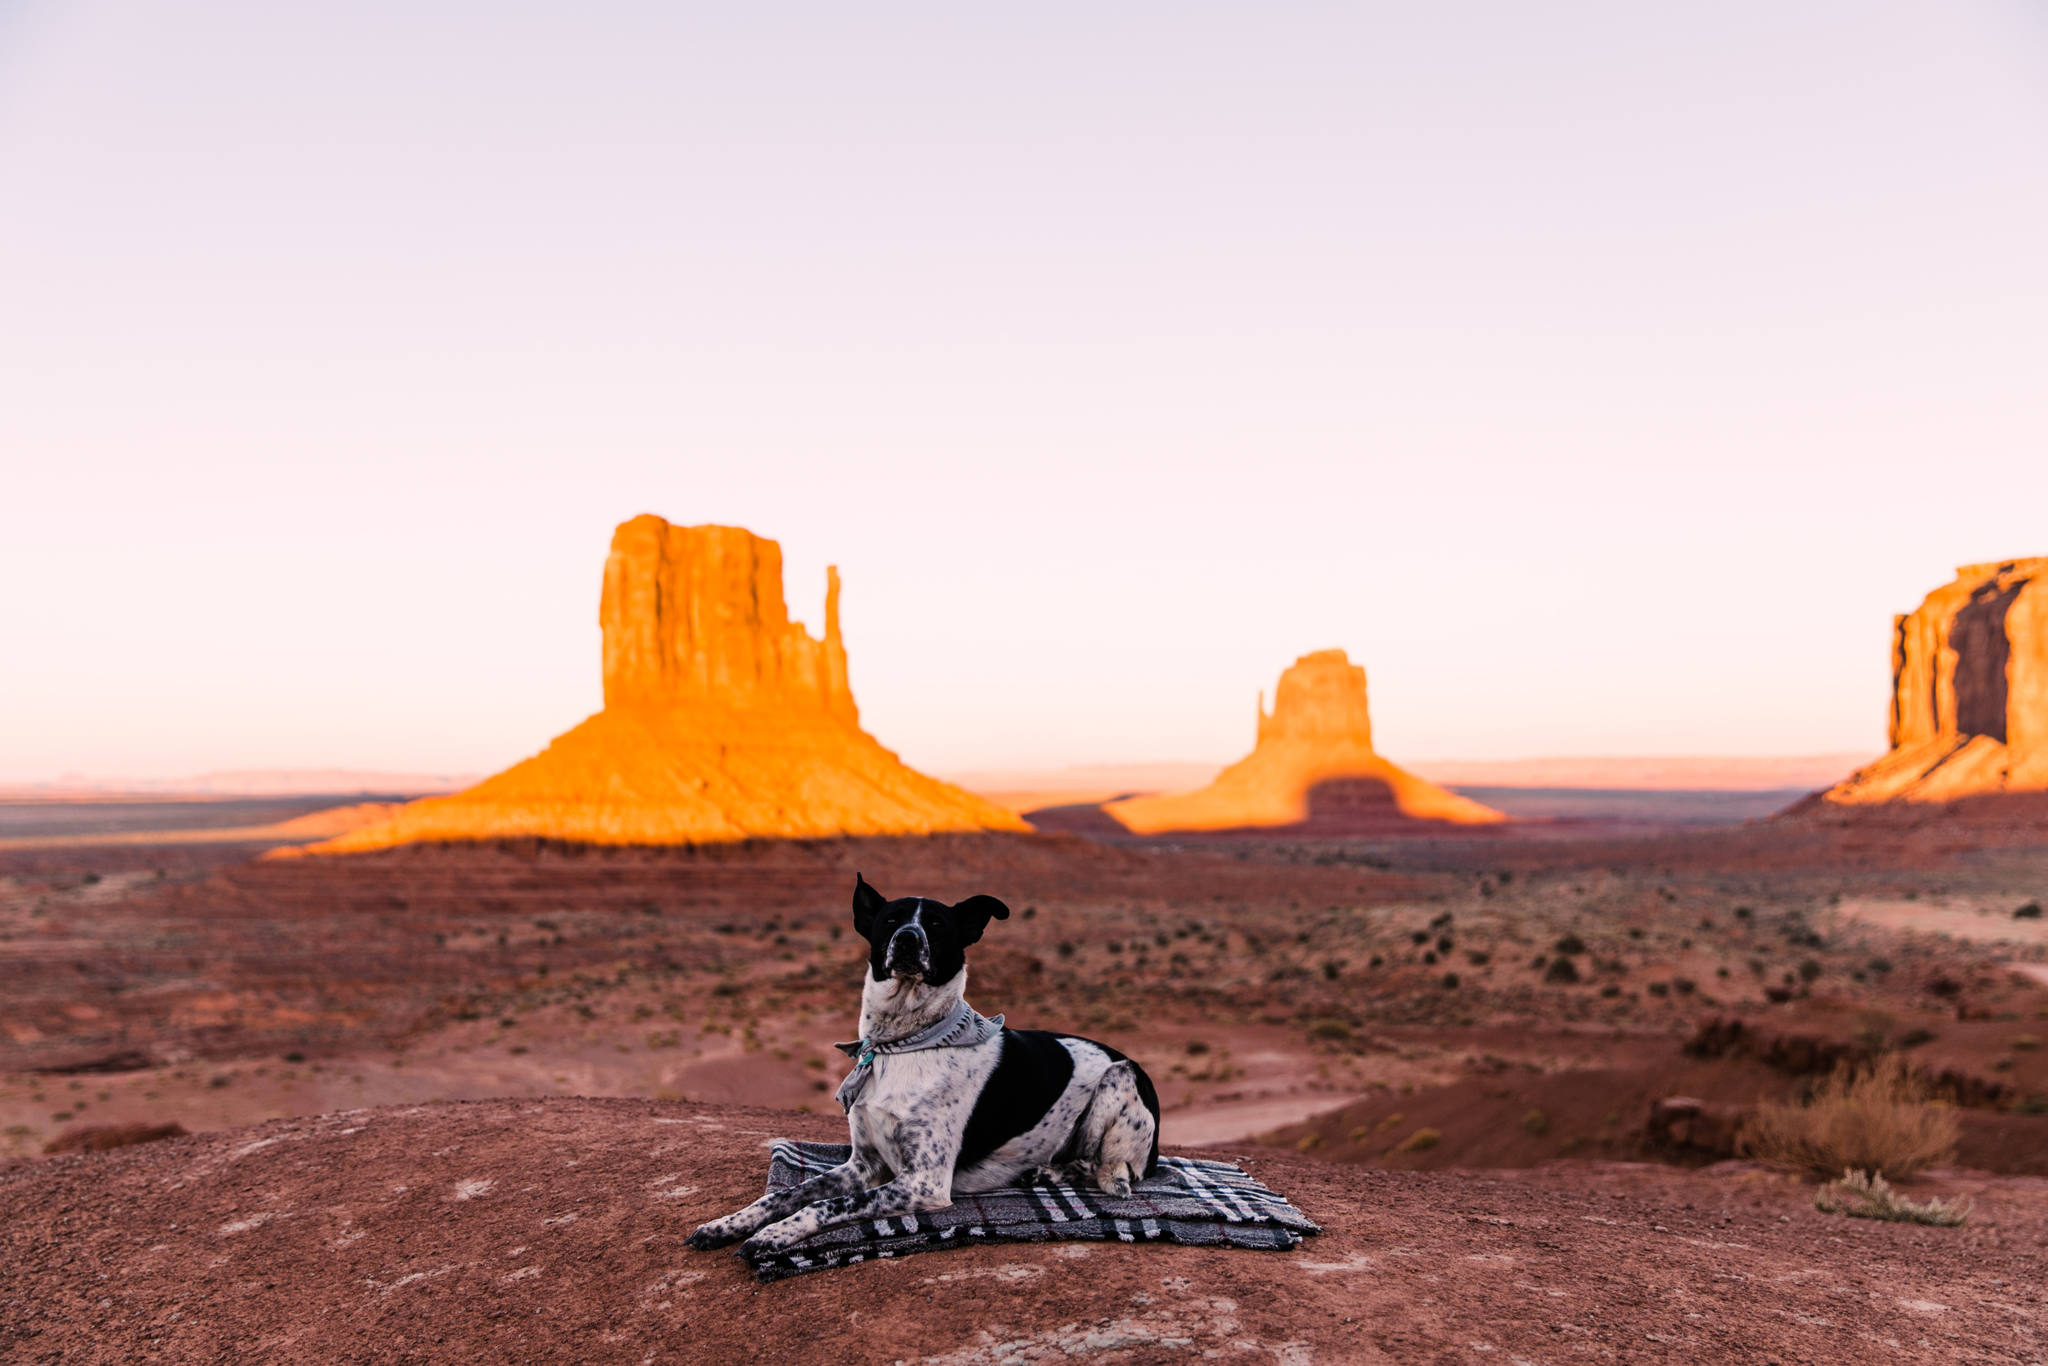 camping in monument valley | utah and california adventure elopement photographers | the hearnes adventure photography | www.thehearnes.com